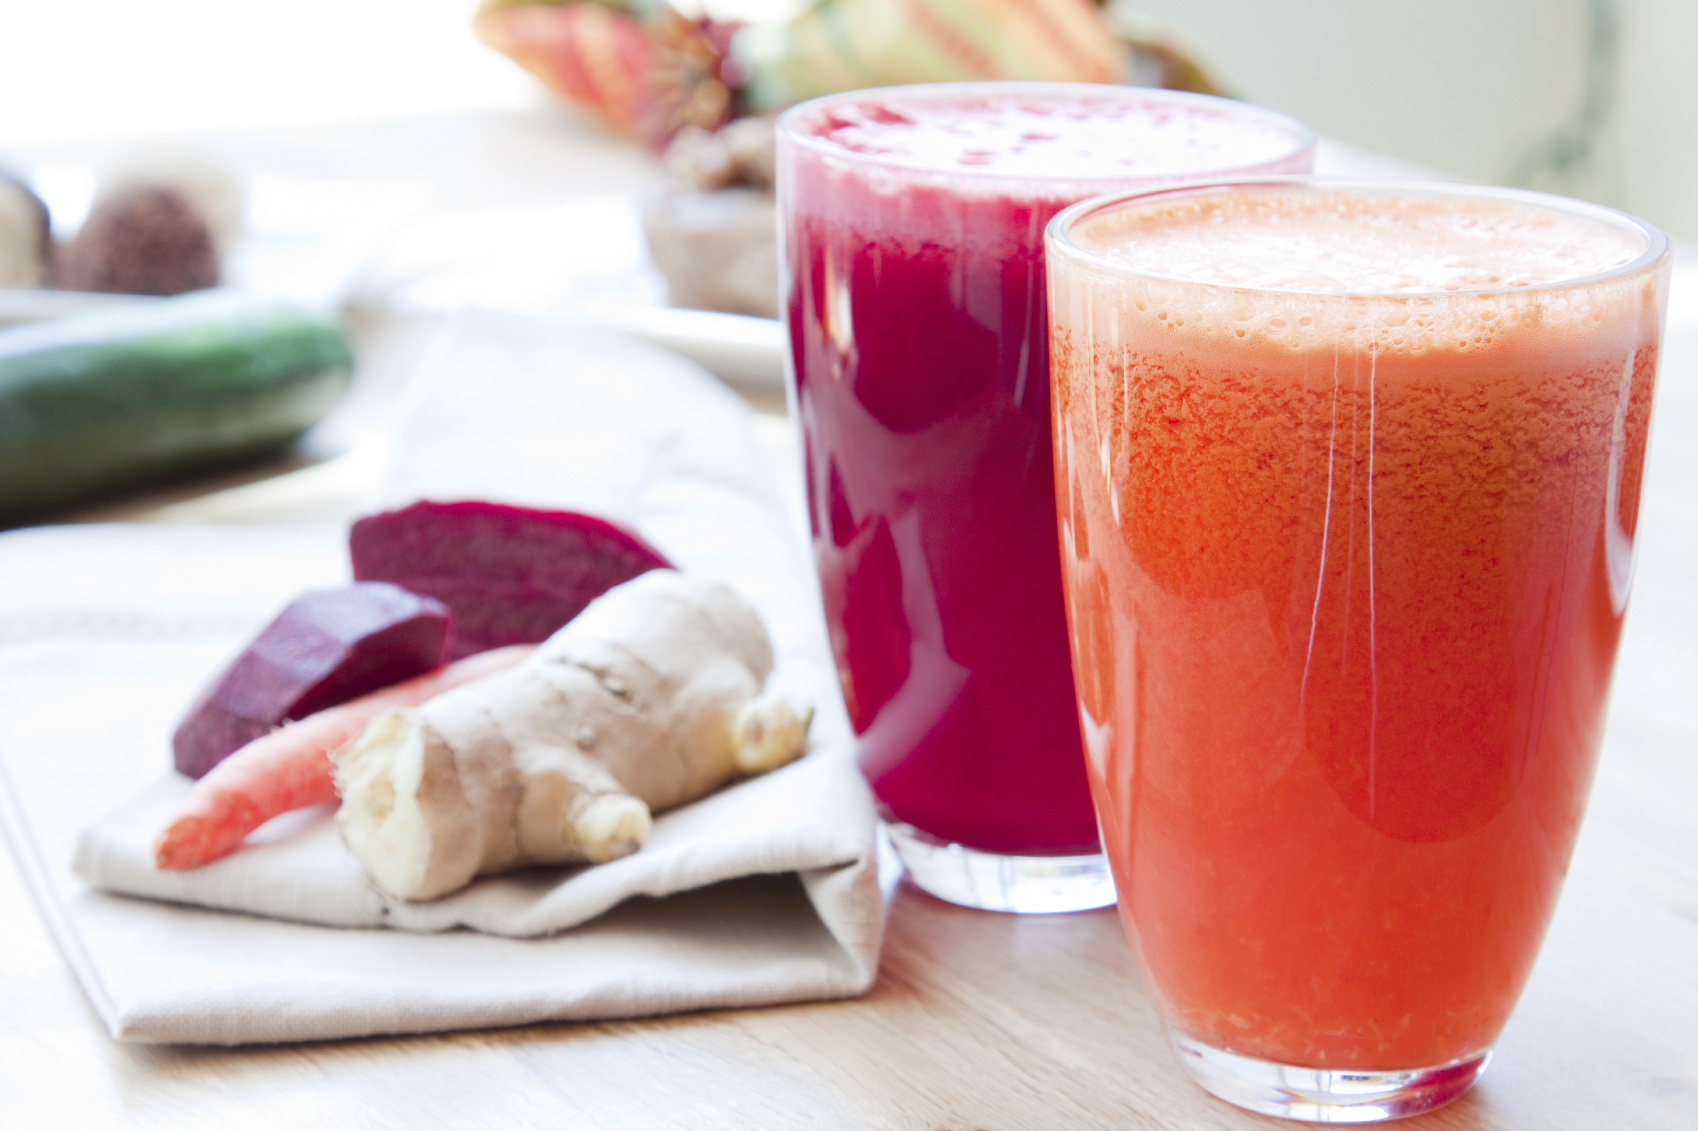 January Juicing Tips from Everyday Good Thinking, the official blog of @HamiltonBeach